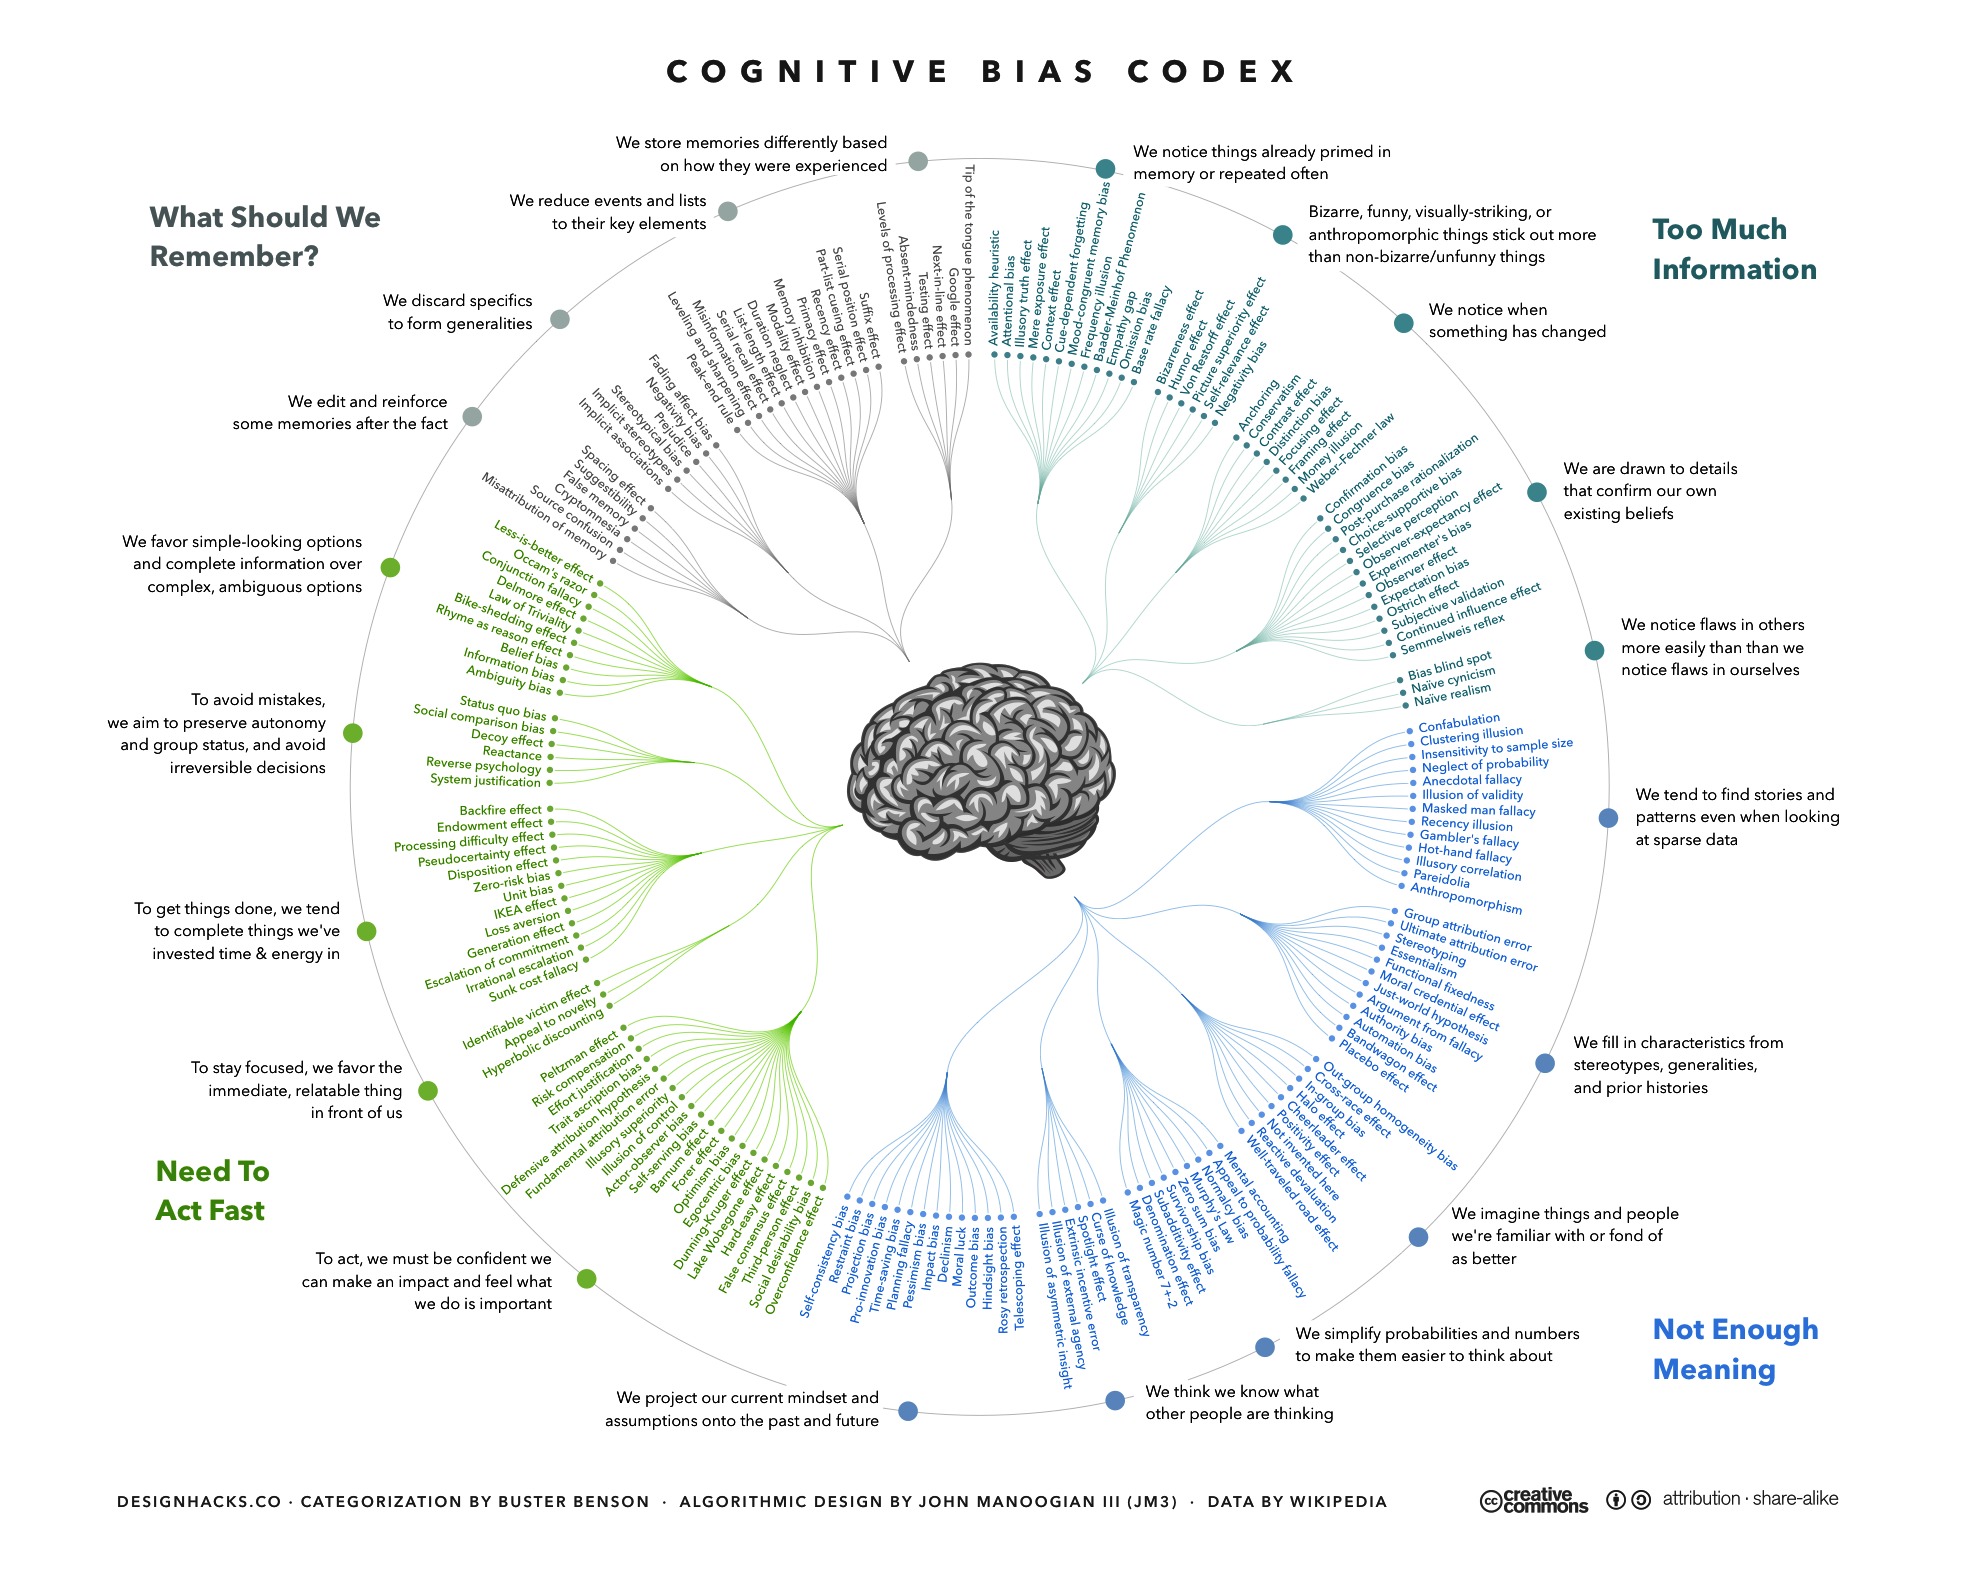 Think you're bias free? Not so fast, this codex represents the myriad cognitive biases we humans fall into routinely